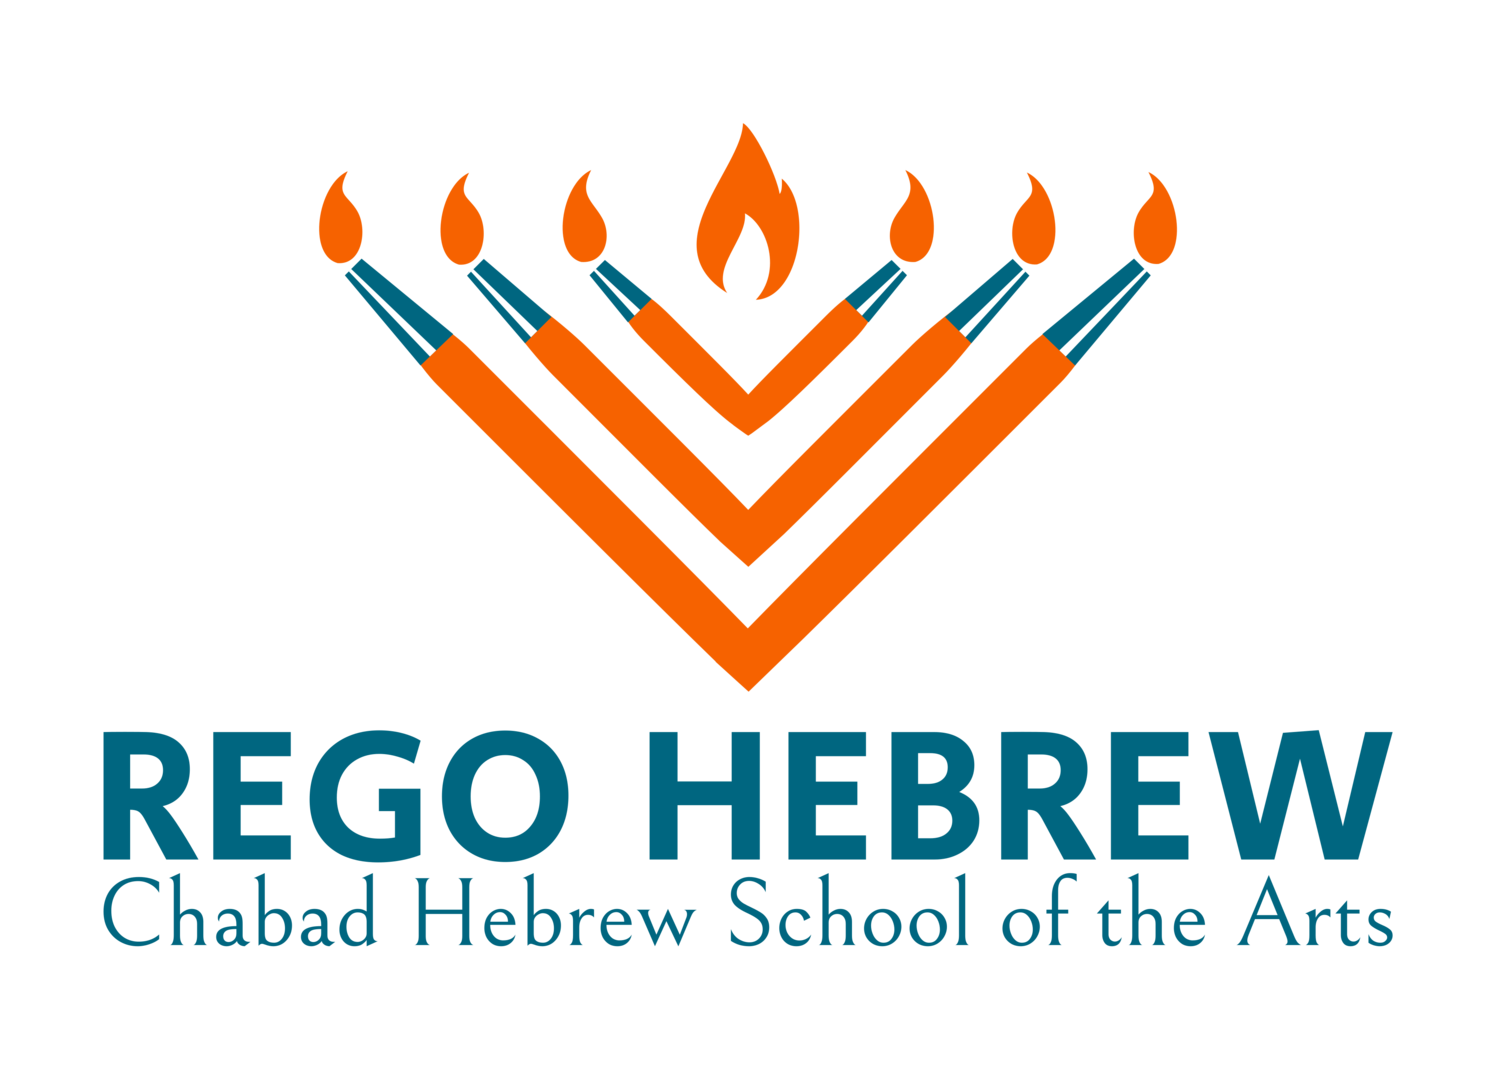 Rego Hebrew- Chabad Hebrew School of the Arts